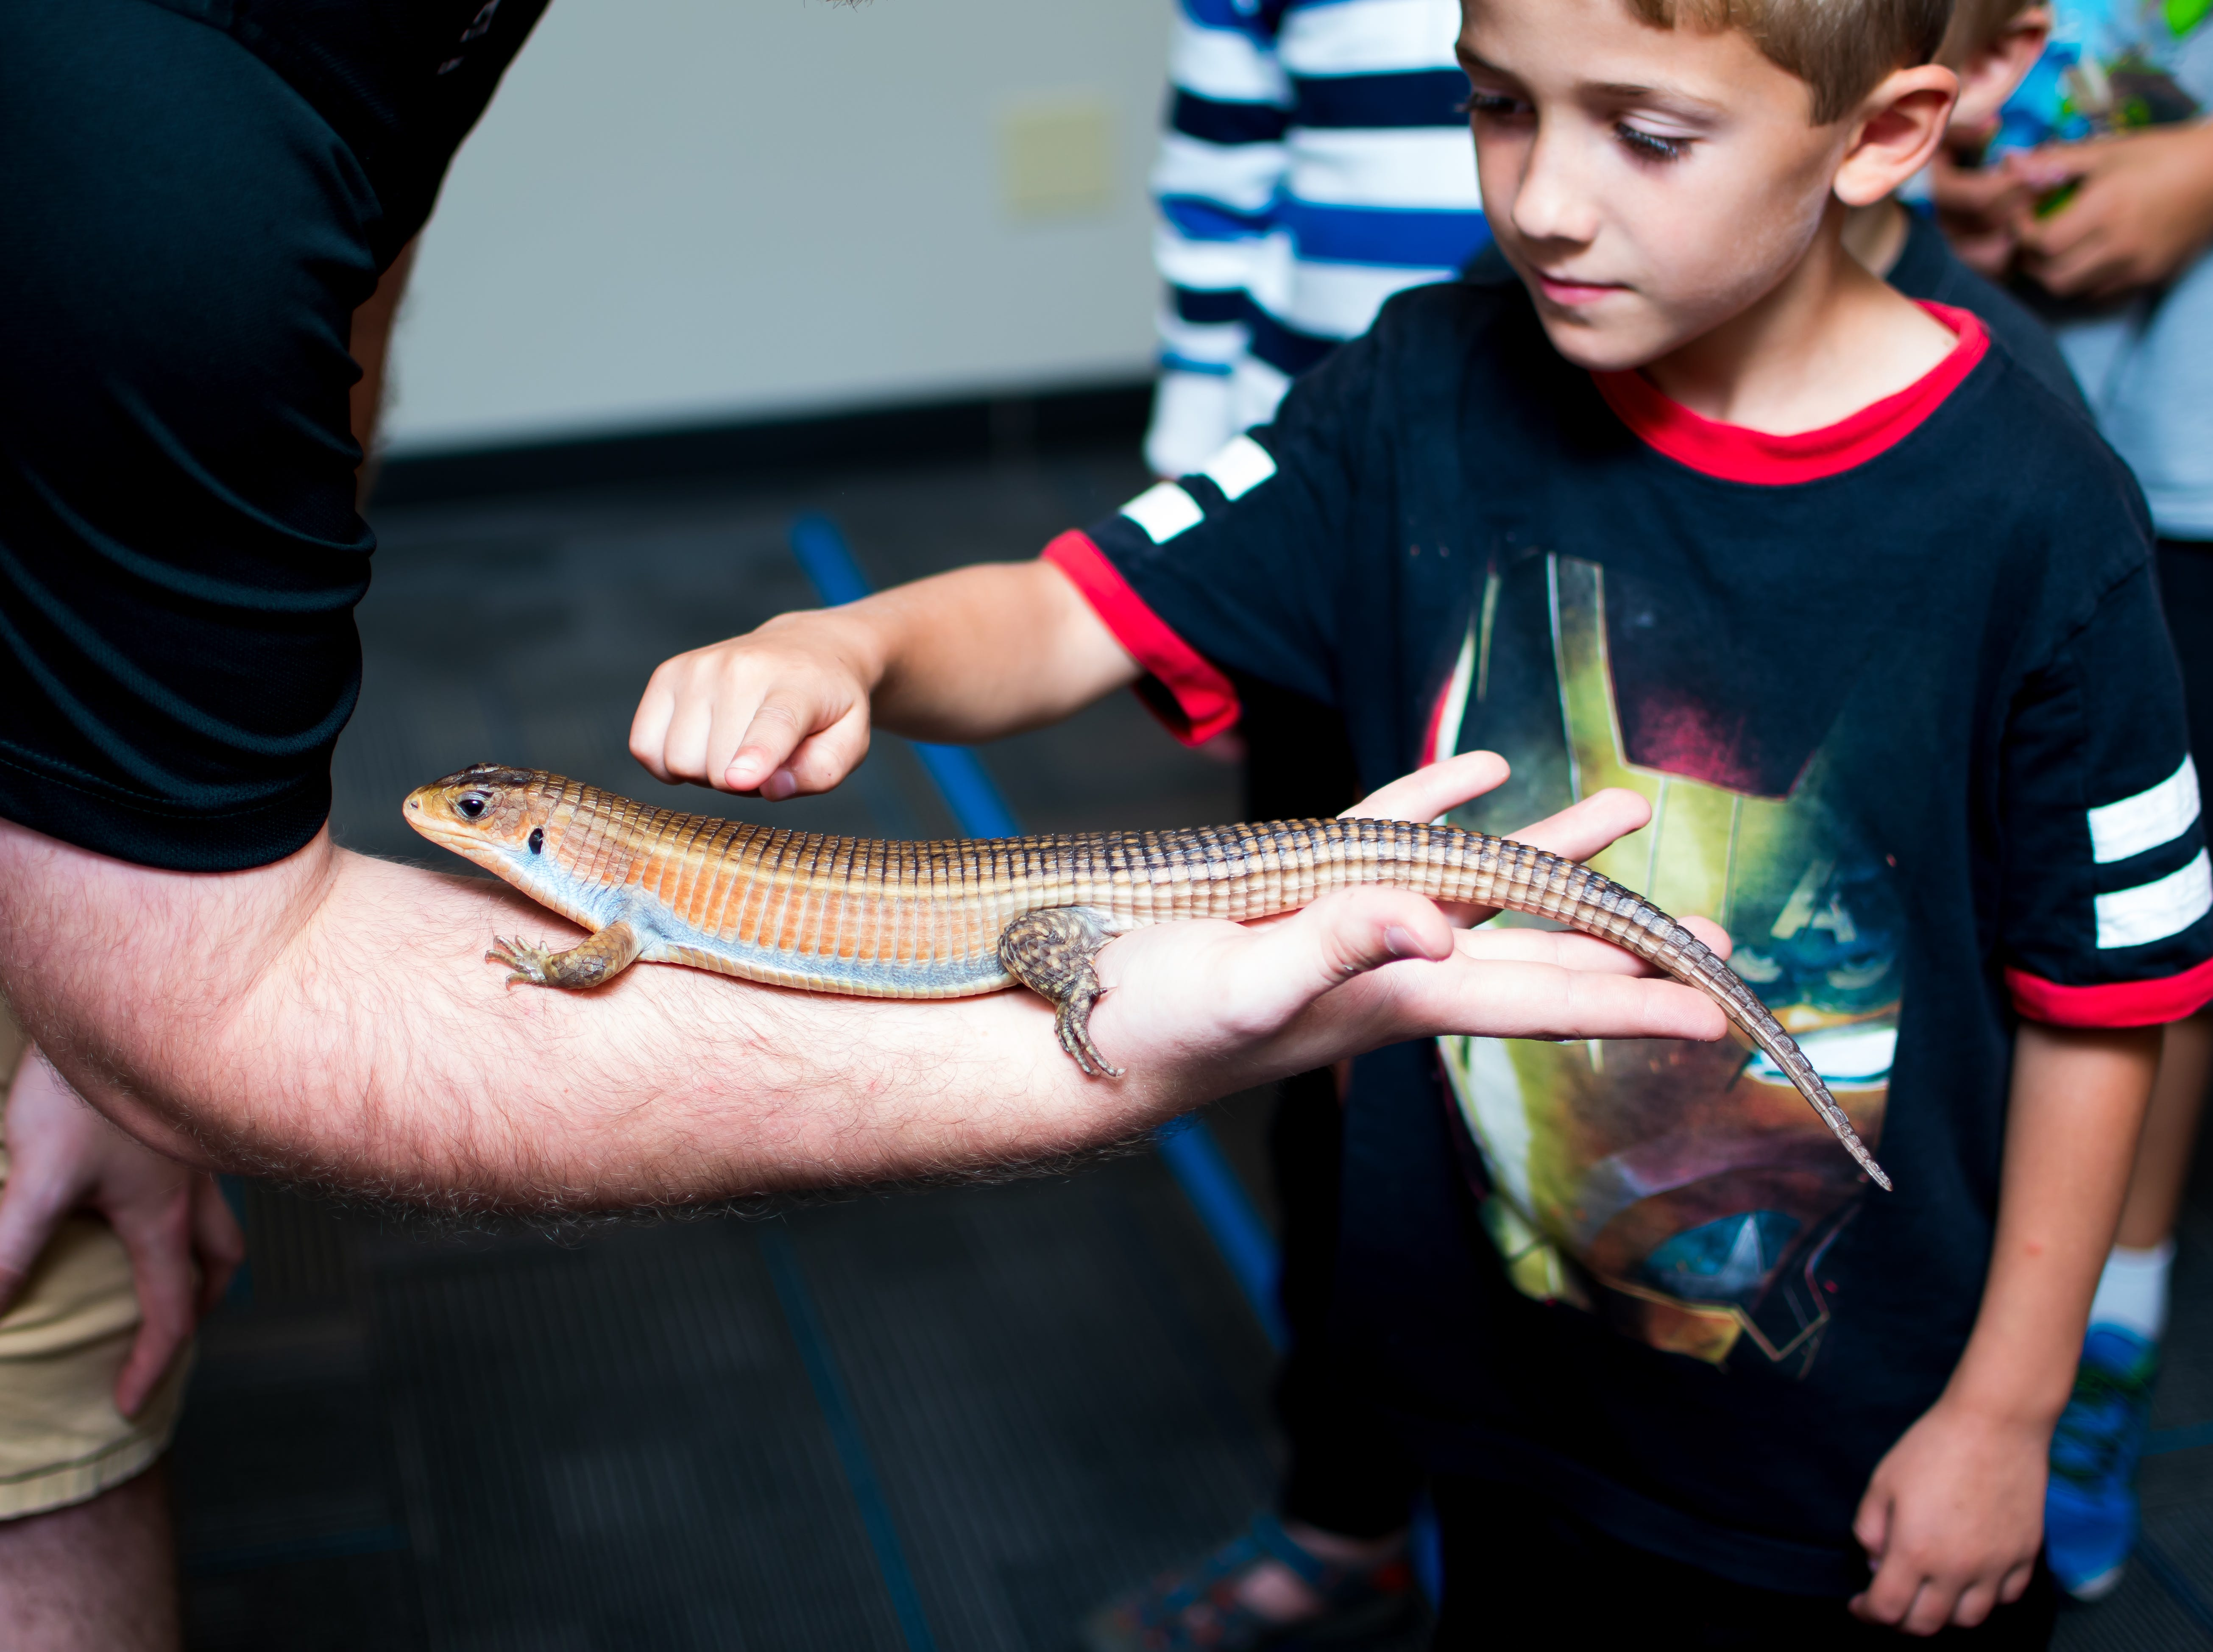 Jared Sunds, community outreach specialist for the Blank Park Zoo, brings out a plated lizard named Niles on Thursday, September 20, 2018 at the Clive Public Library's Zoo Show and Tell in Clive.